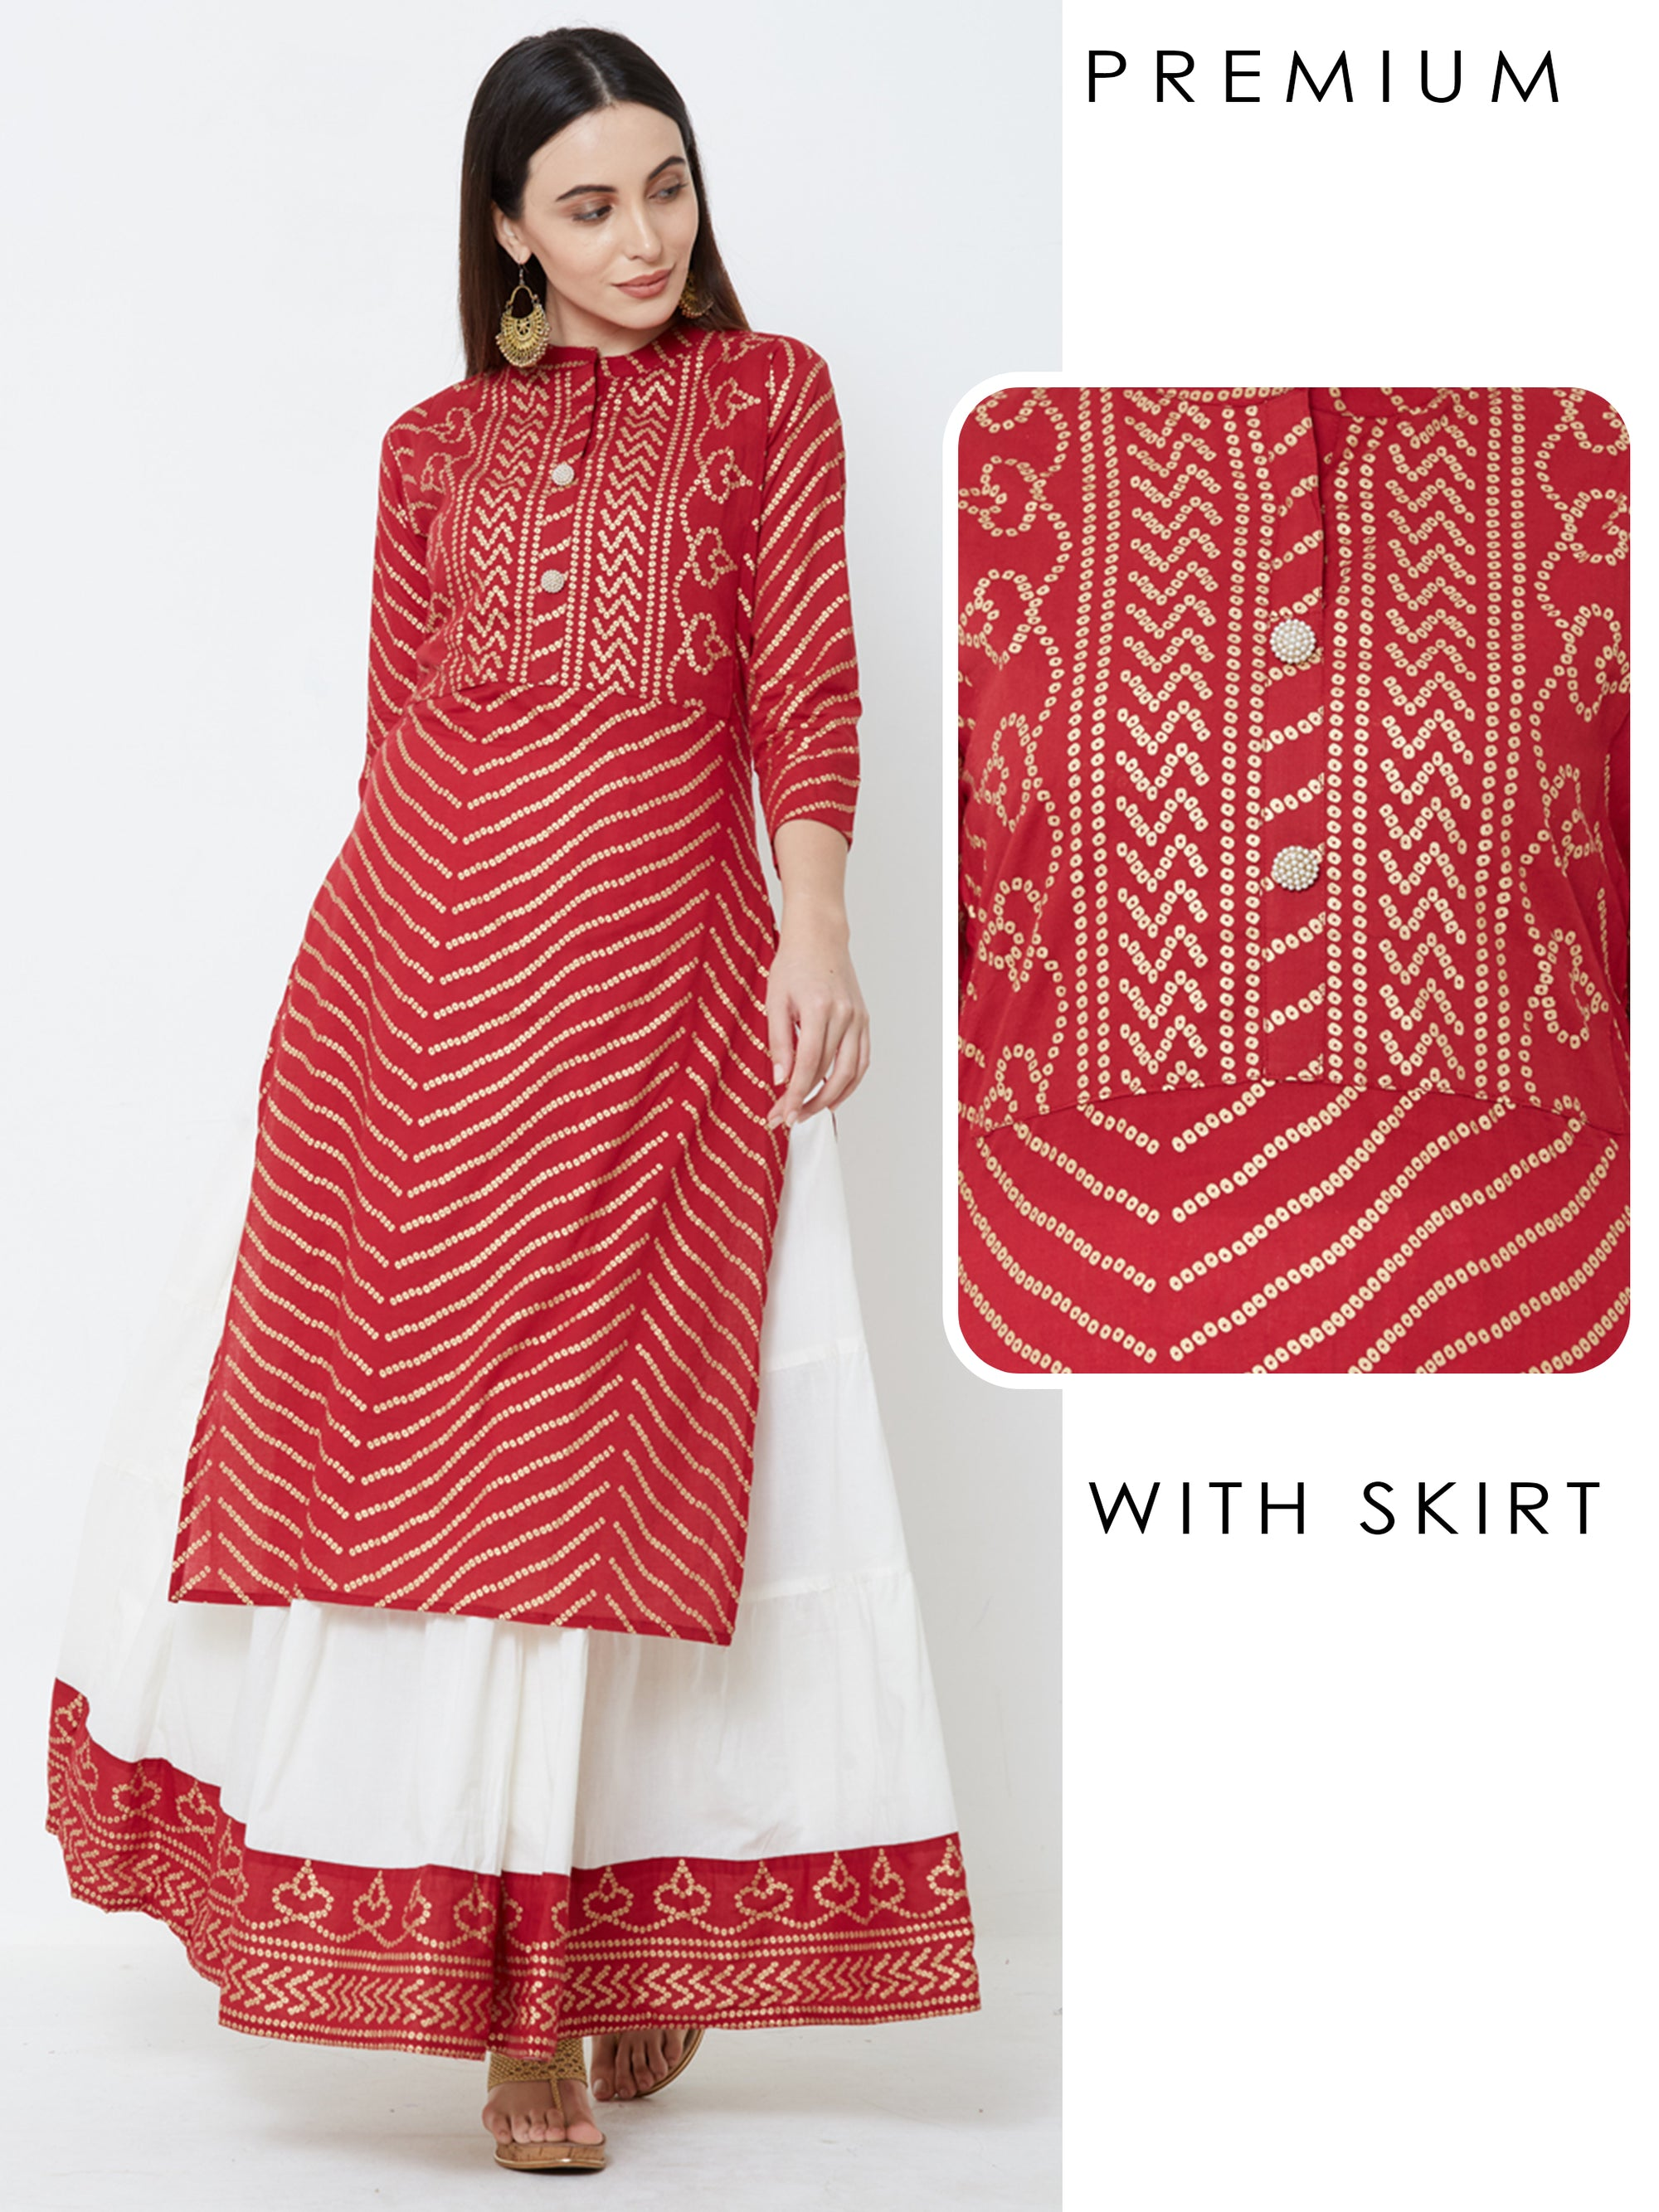 Foil Bandhani & Bead Embellished Kurta with Tiered Skirt – Red